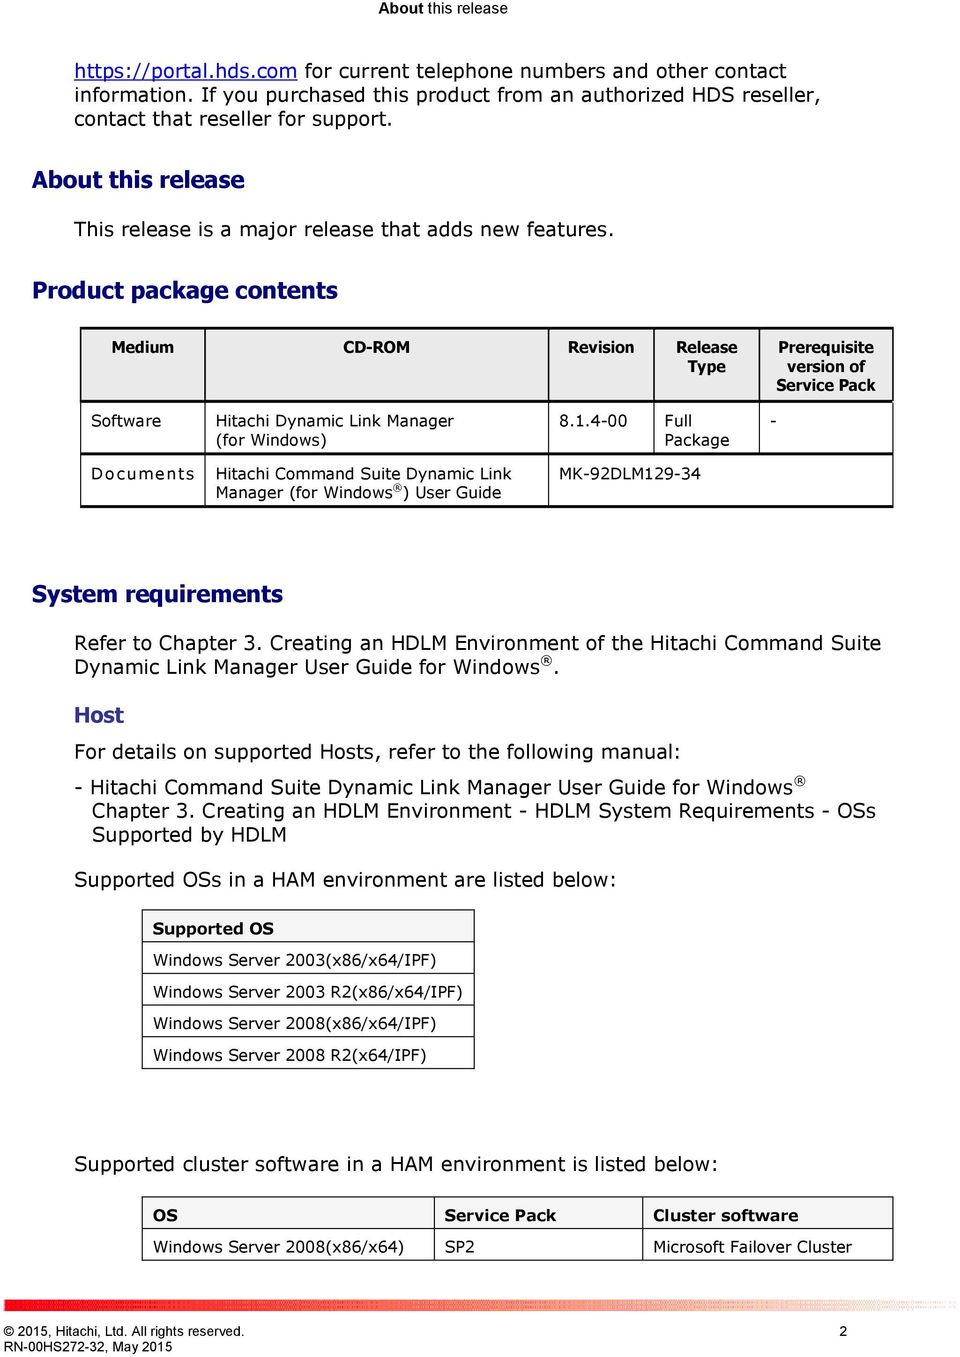 hitachi dynamic link manager for windows release notes pdf rh docplayer net Kindle Fire User Guide User Guide Template